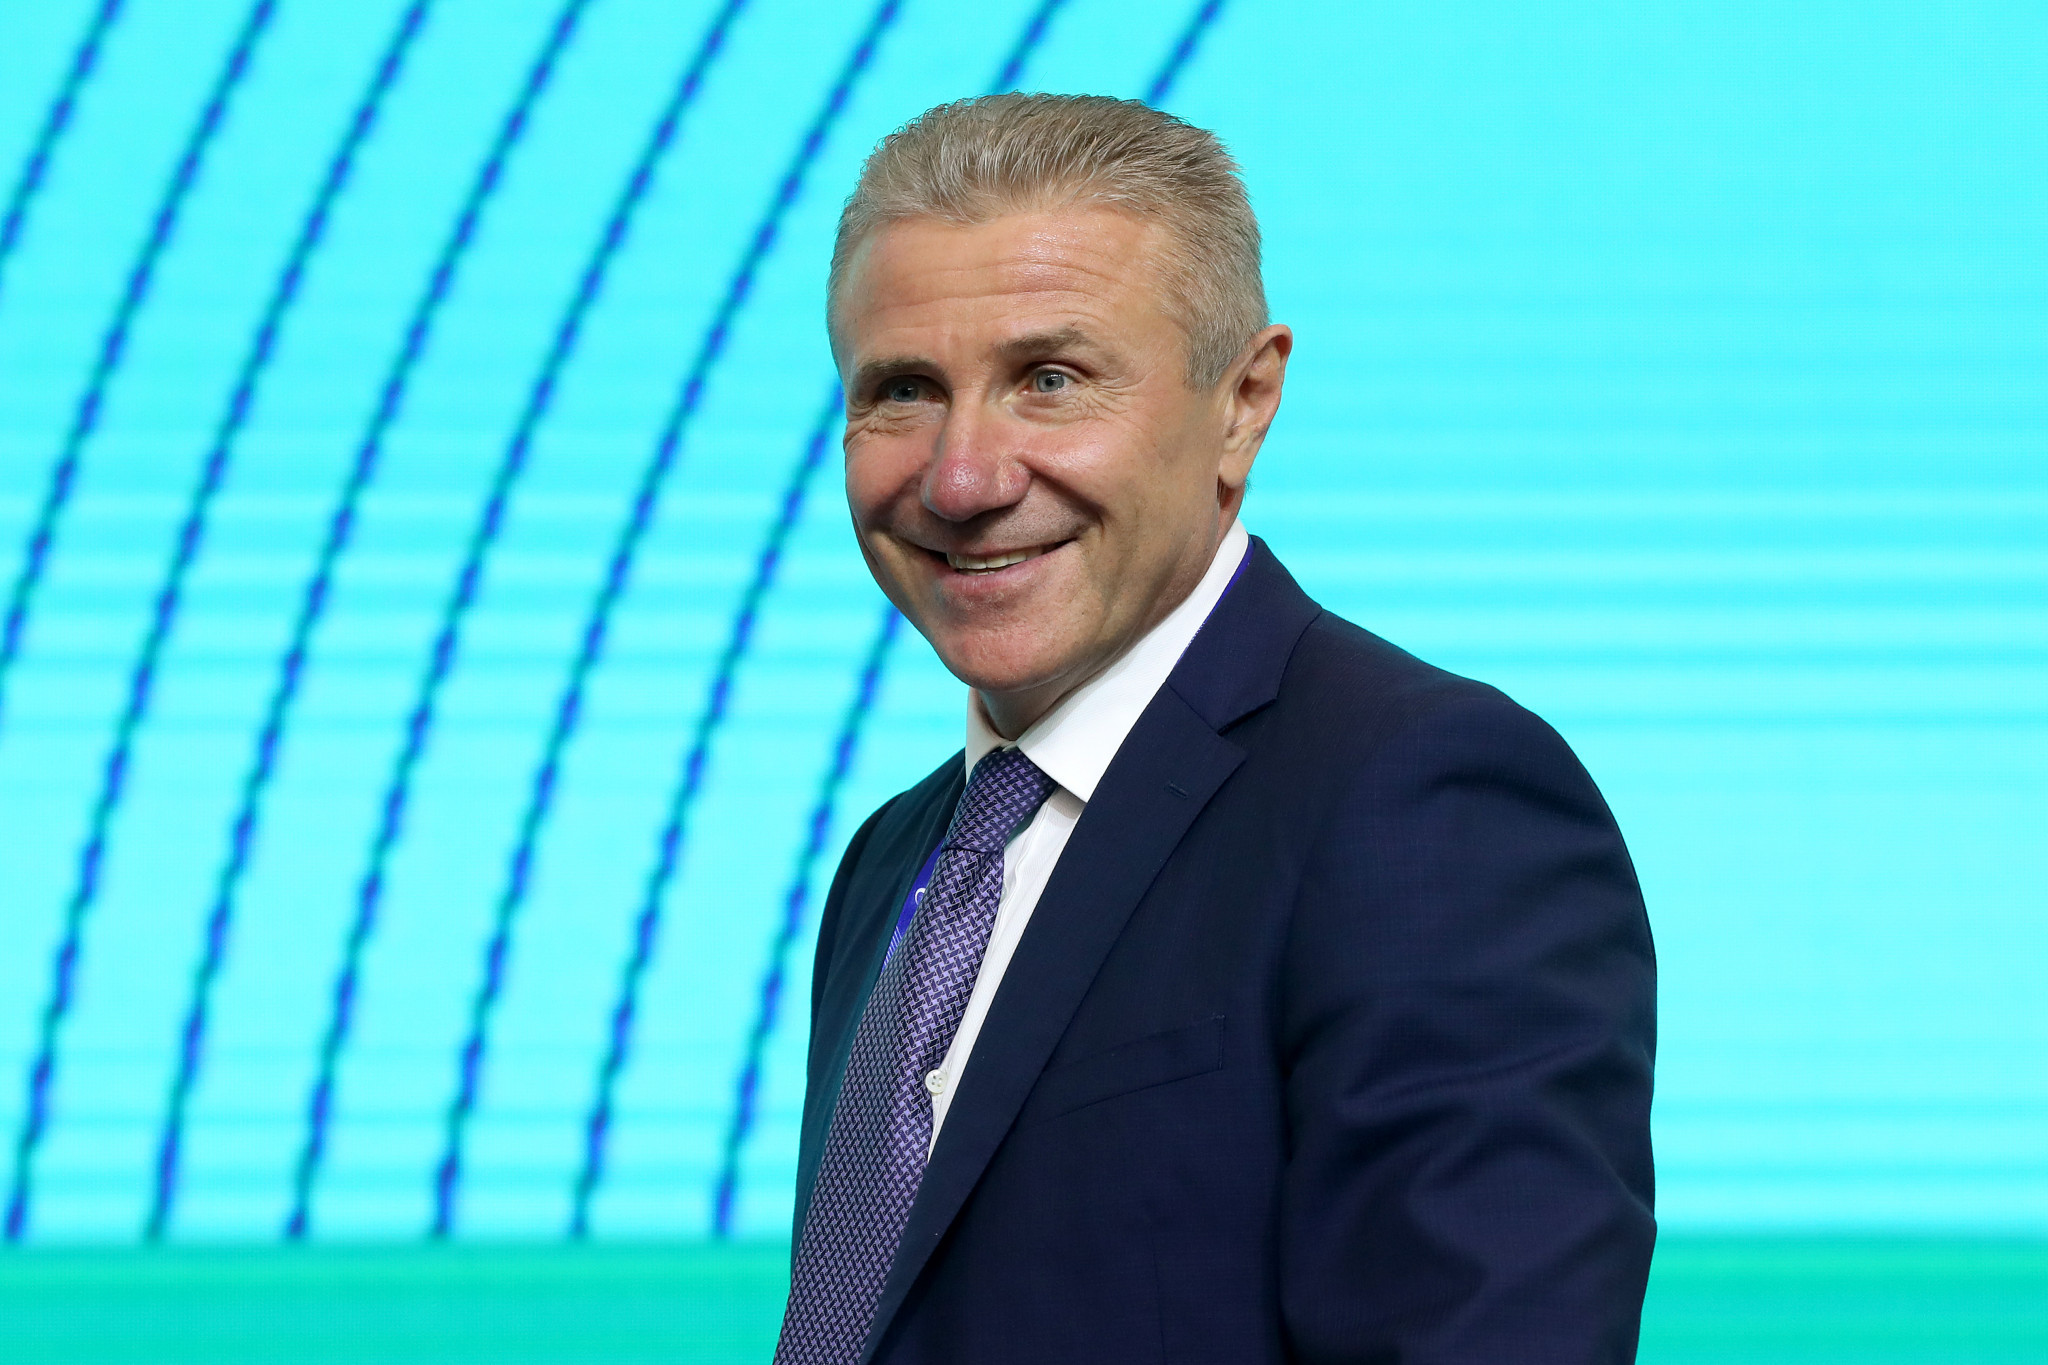 President of the National Olympic Committee of Ukraine Sergey Bubka said the hosting of a future Olympic Games could help develop Ukraine ©Getty Images